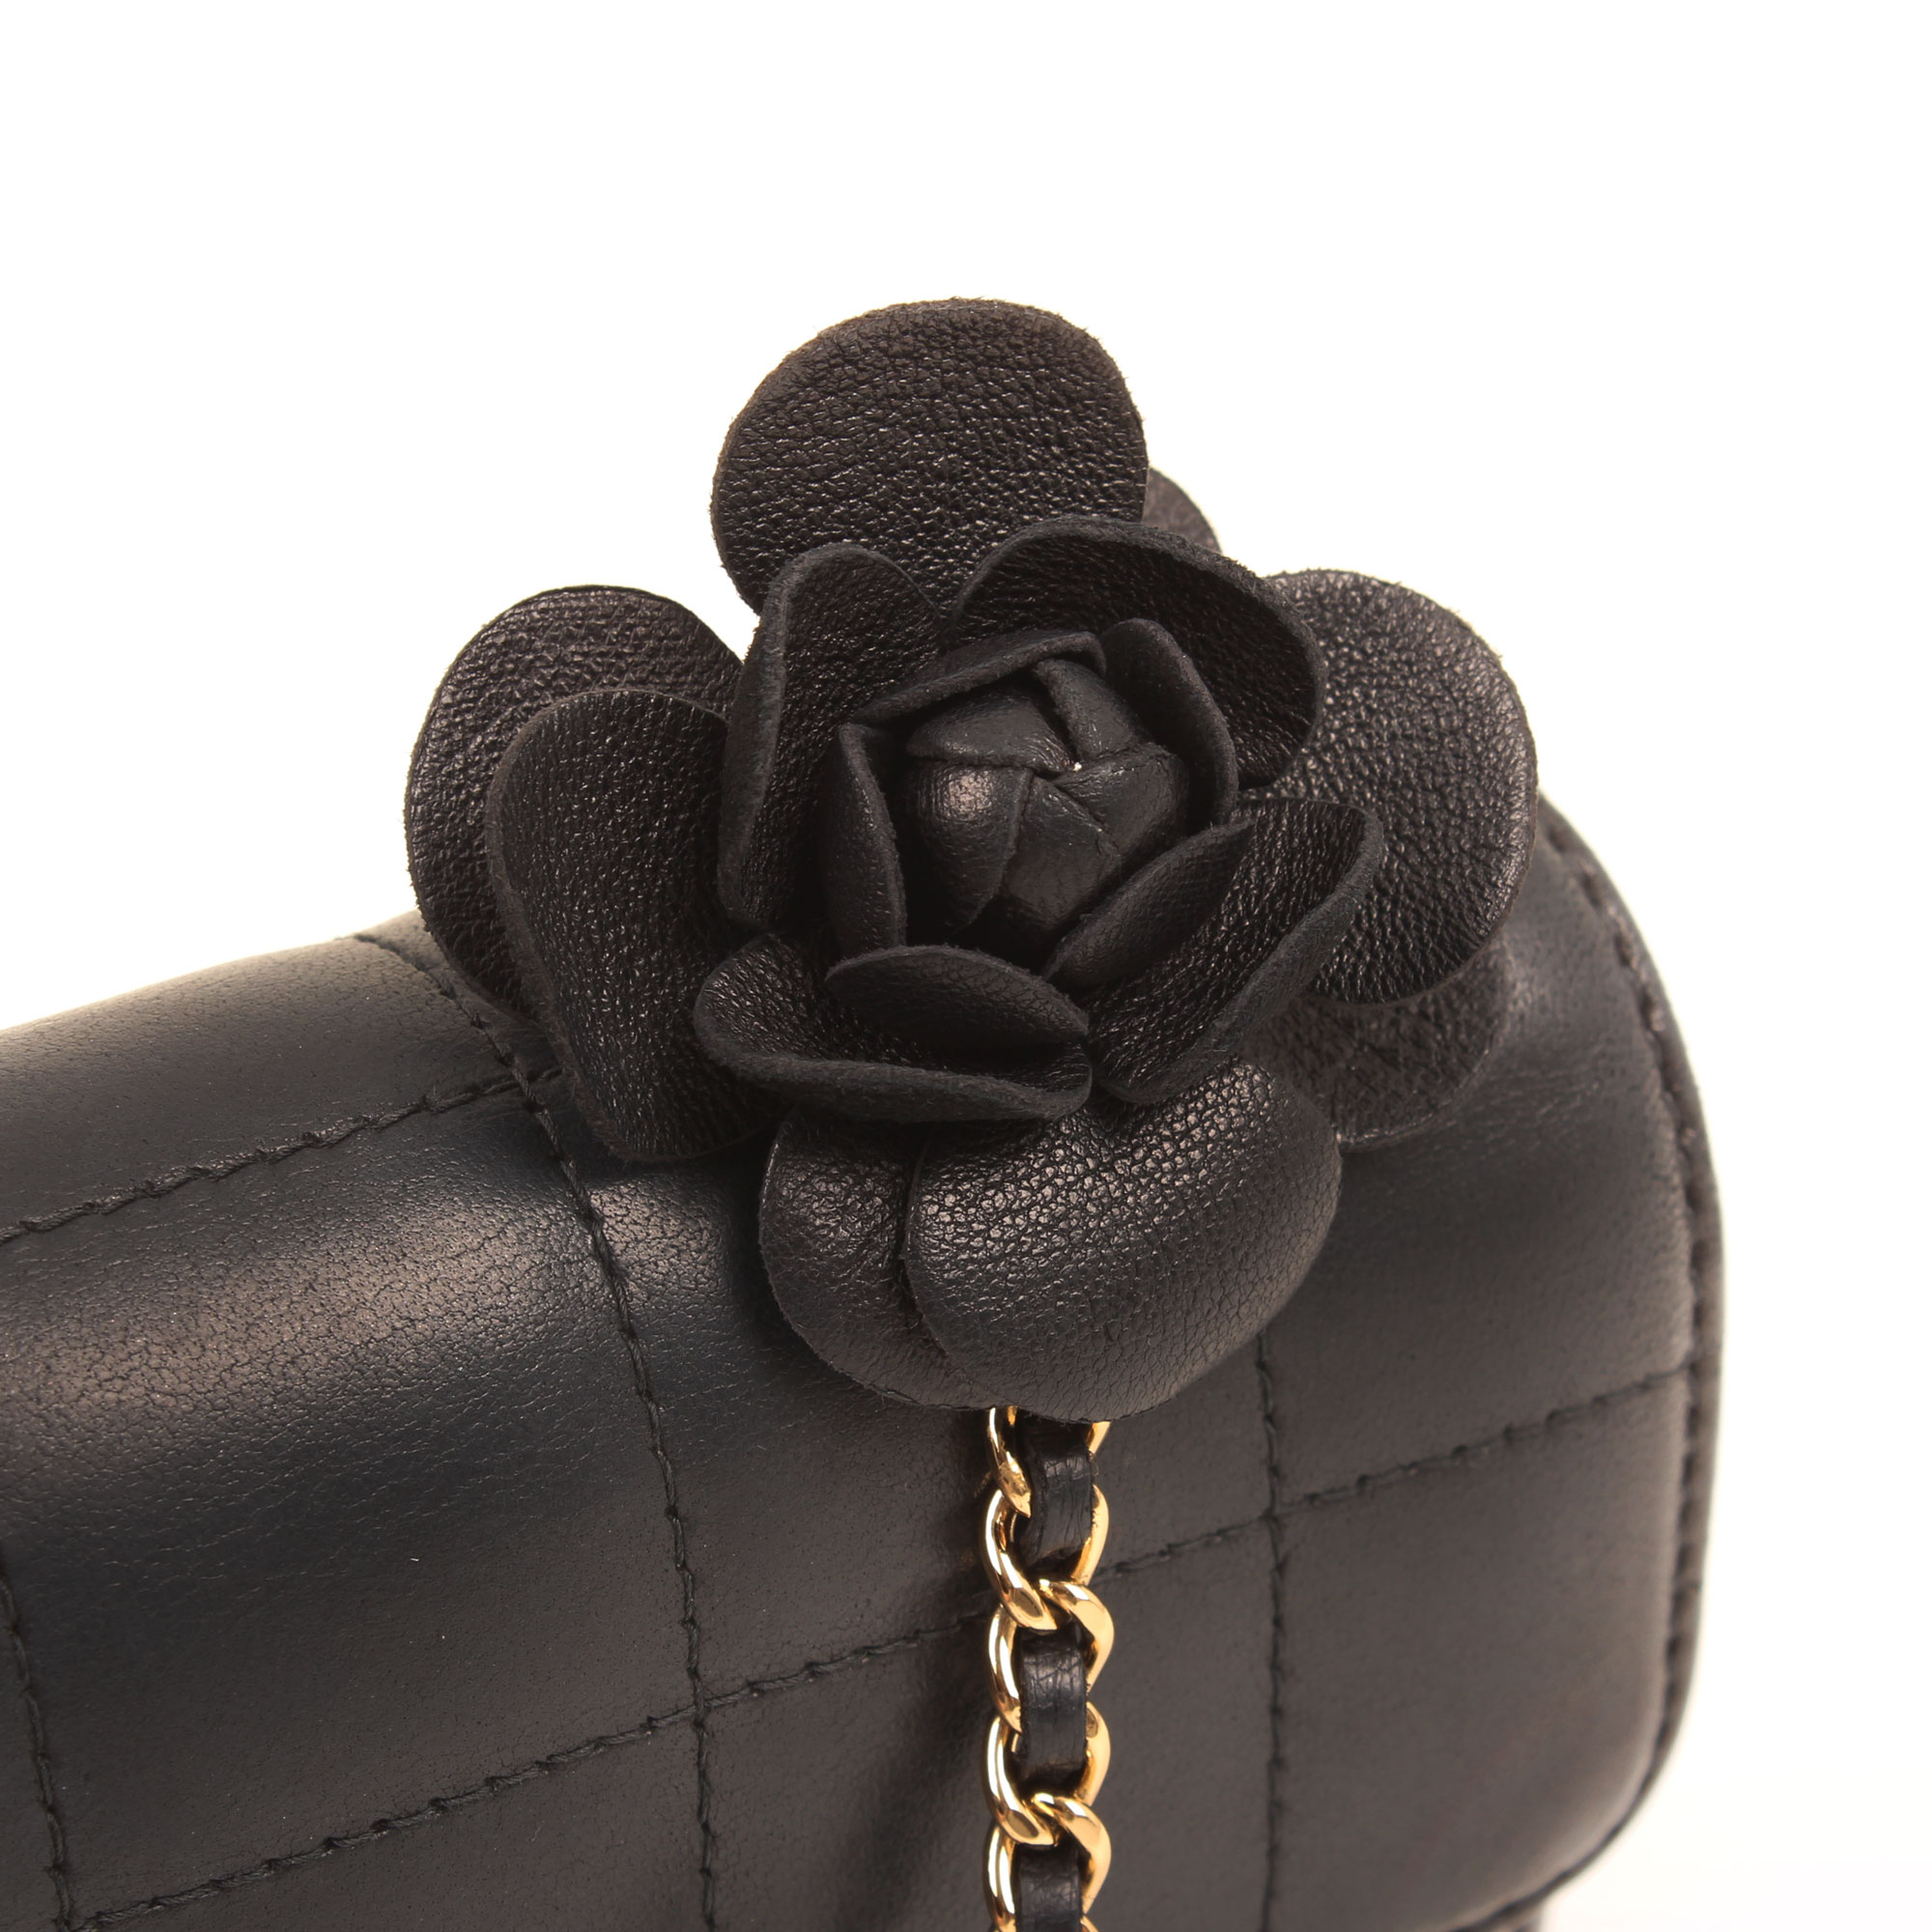 Imagen de detalle de la flor del bolso chanel mini crossbody chocolate bar navy blue camelia